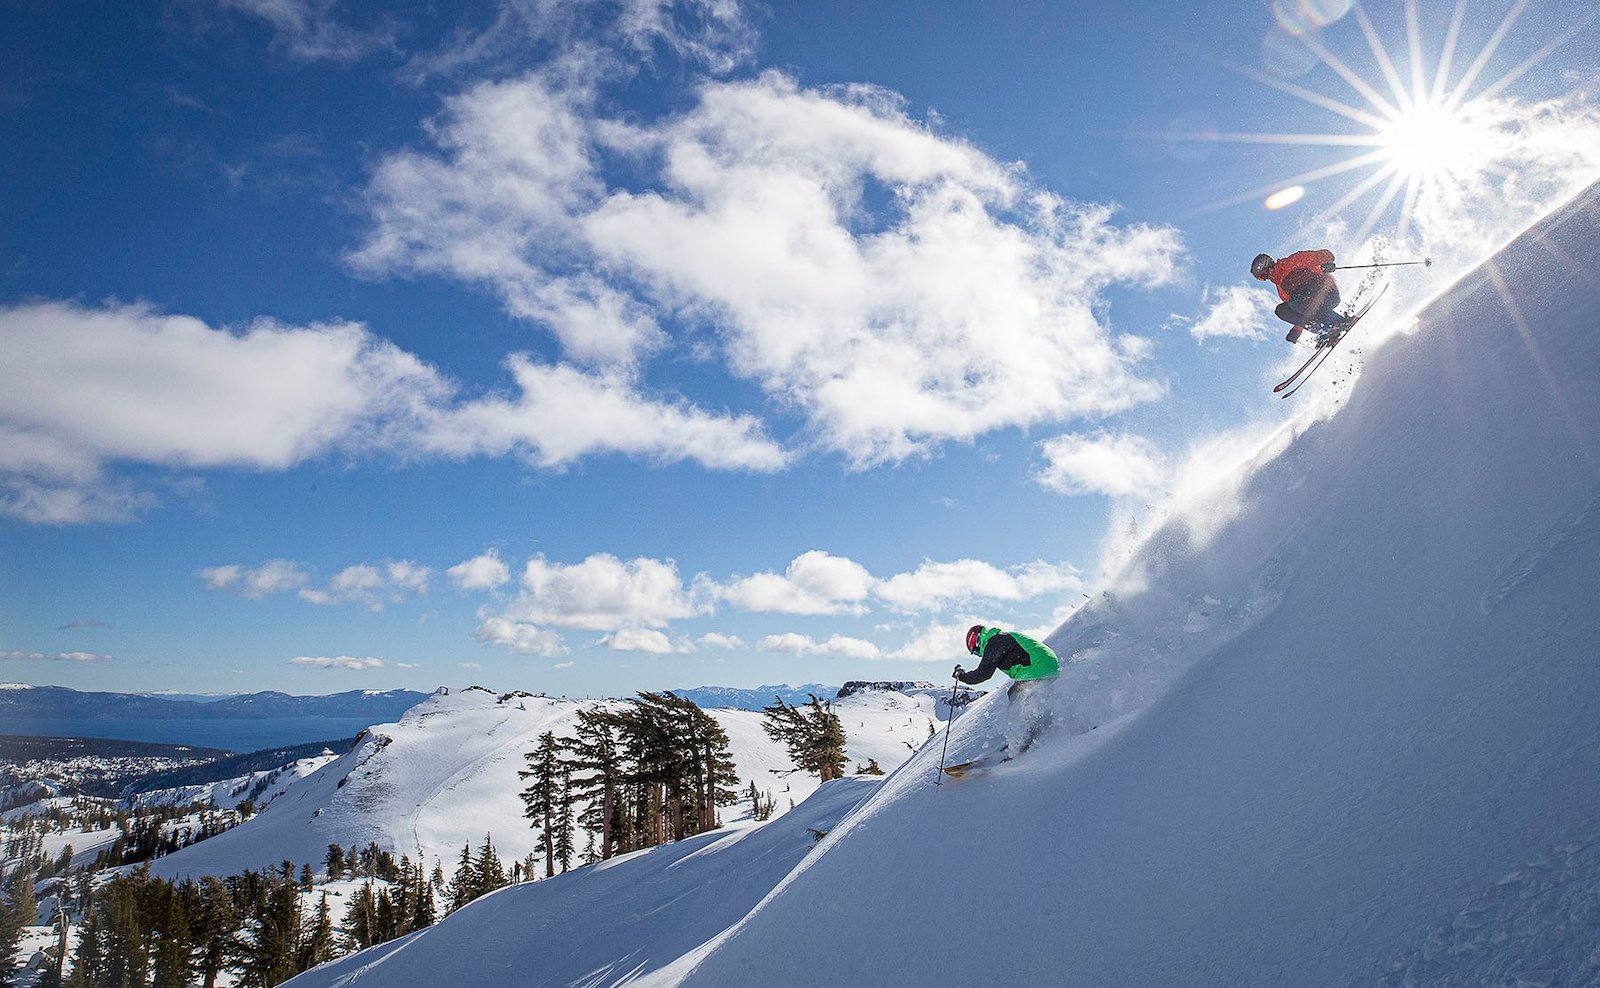 Two skiers hitting the slopes at Squaw Alpine Resort in California